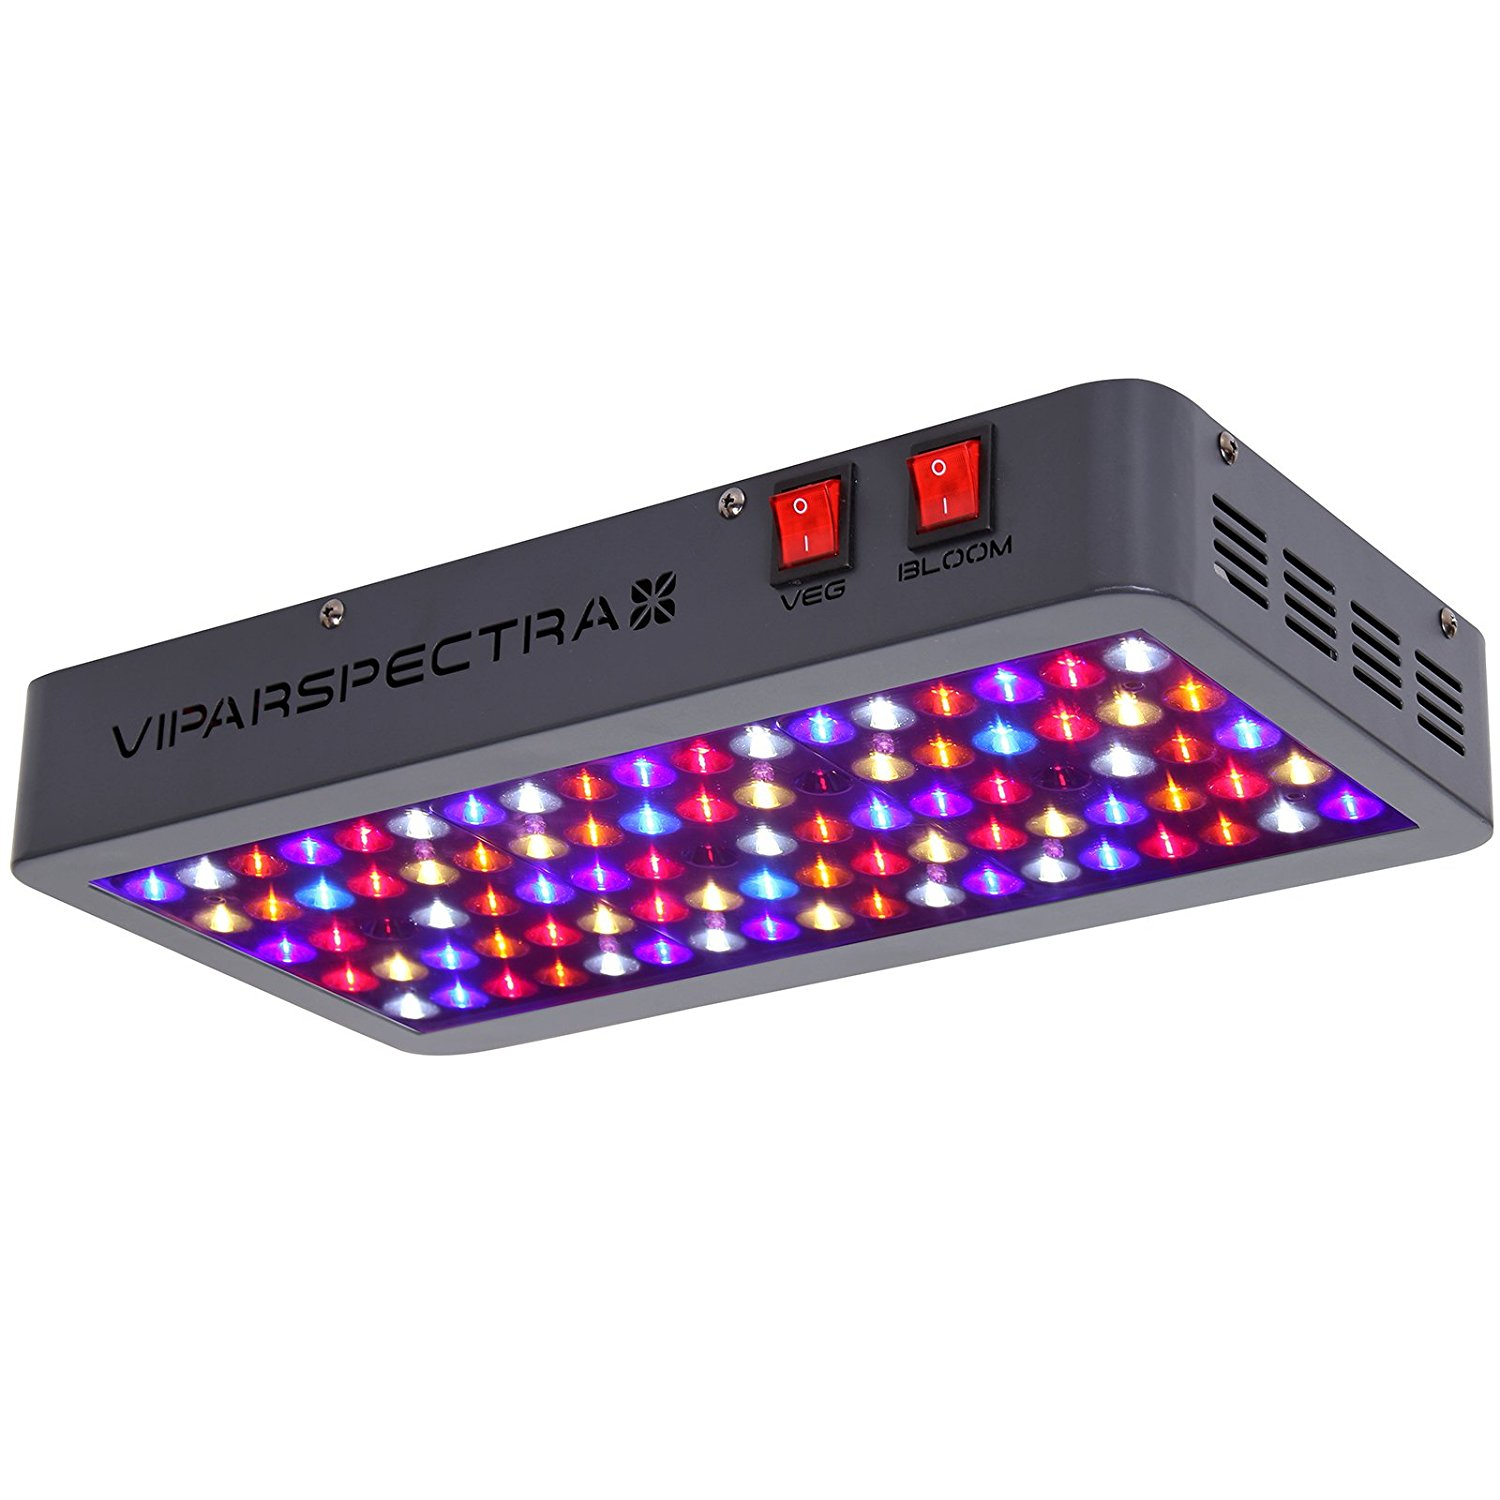 5. VIPARSPECTRA 450W LED Grow Light (Reflector-Series)